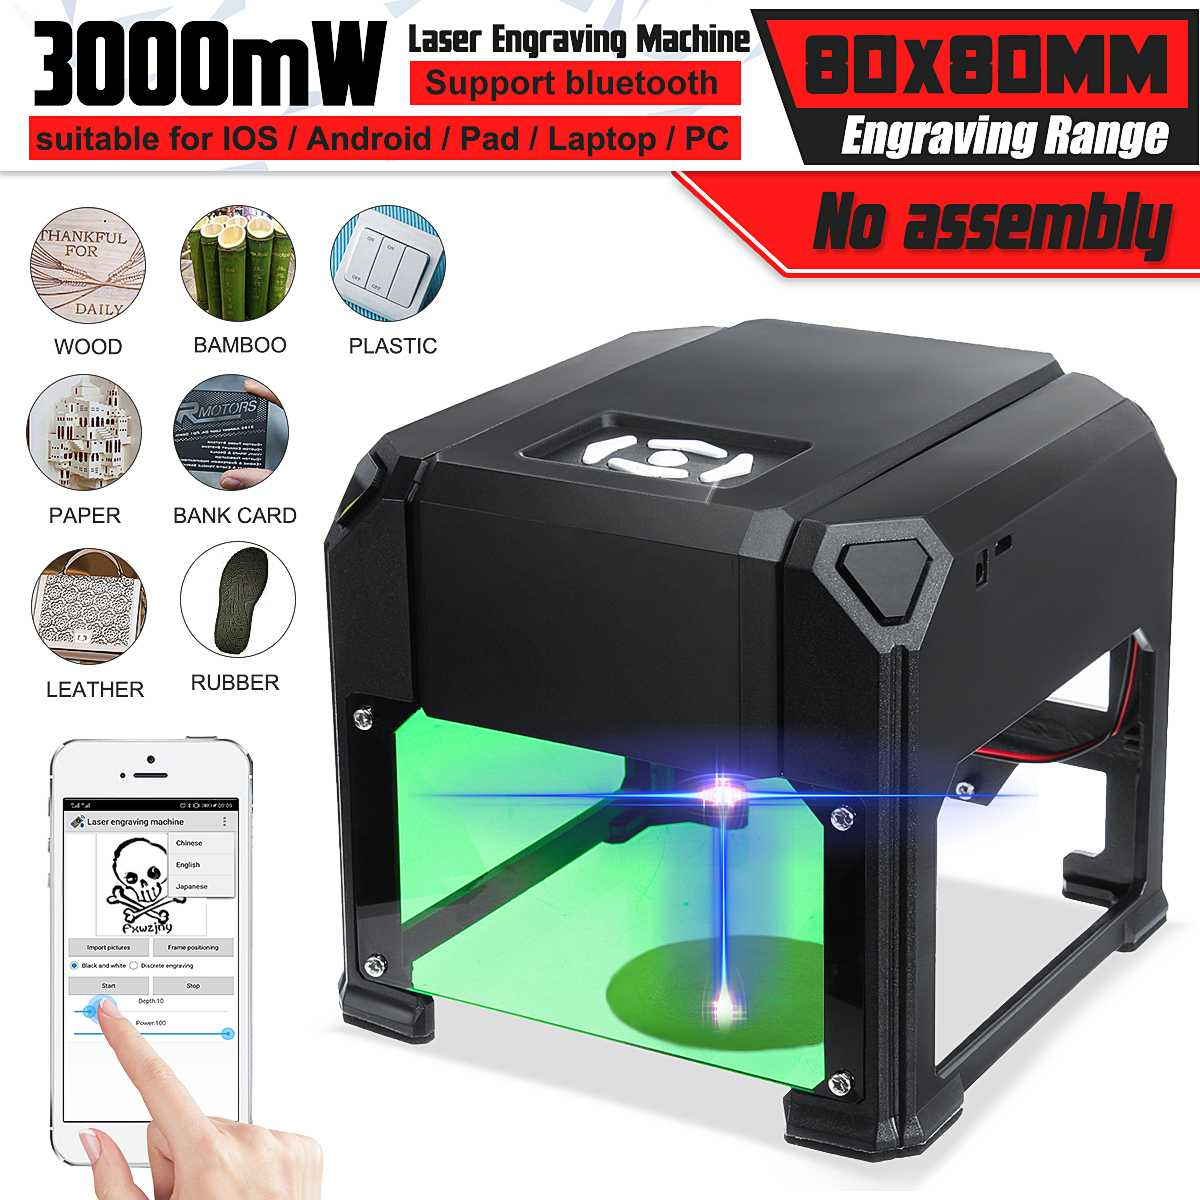 3000mw CNC Bluetooth Laser Engraver DIY Logo Mark Printer Cutter Laser Engraving Machine Woodworking 80x80mm Engraving Ranges